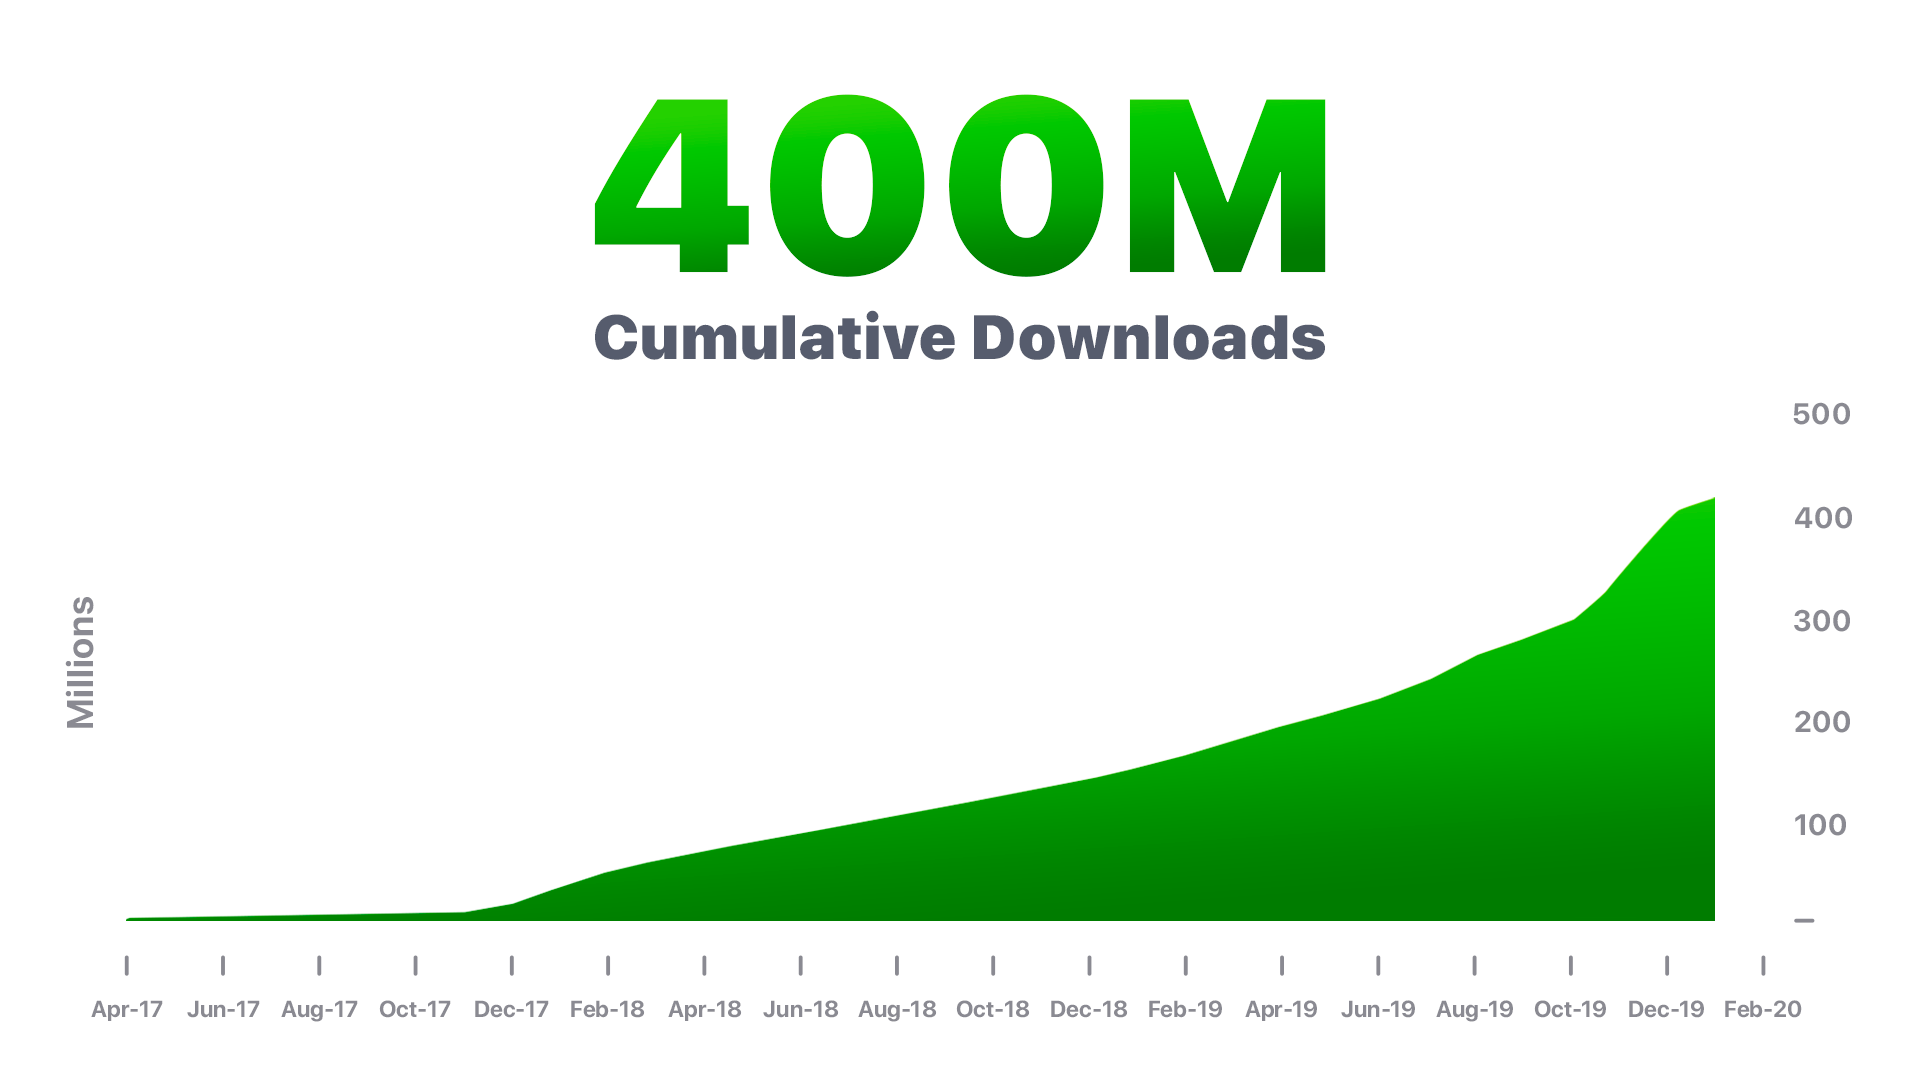 Easybrain starts 2020 with 400,000,000 downloads